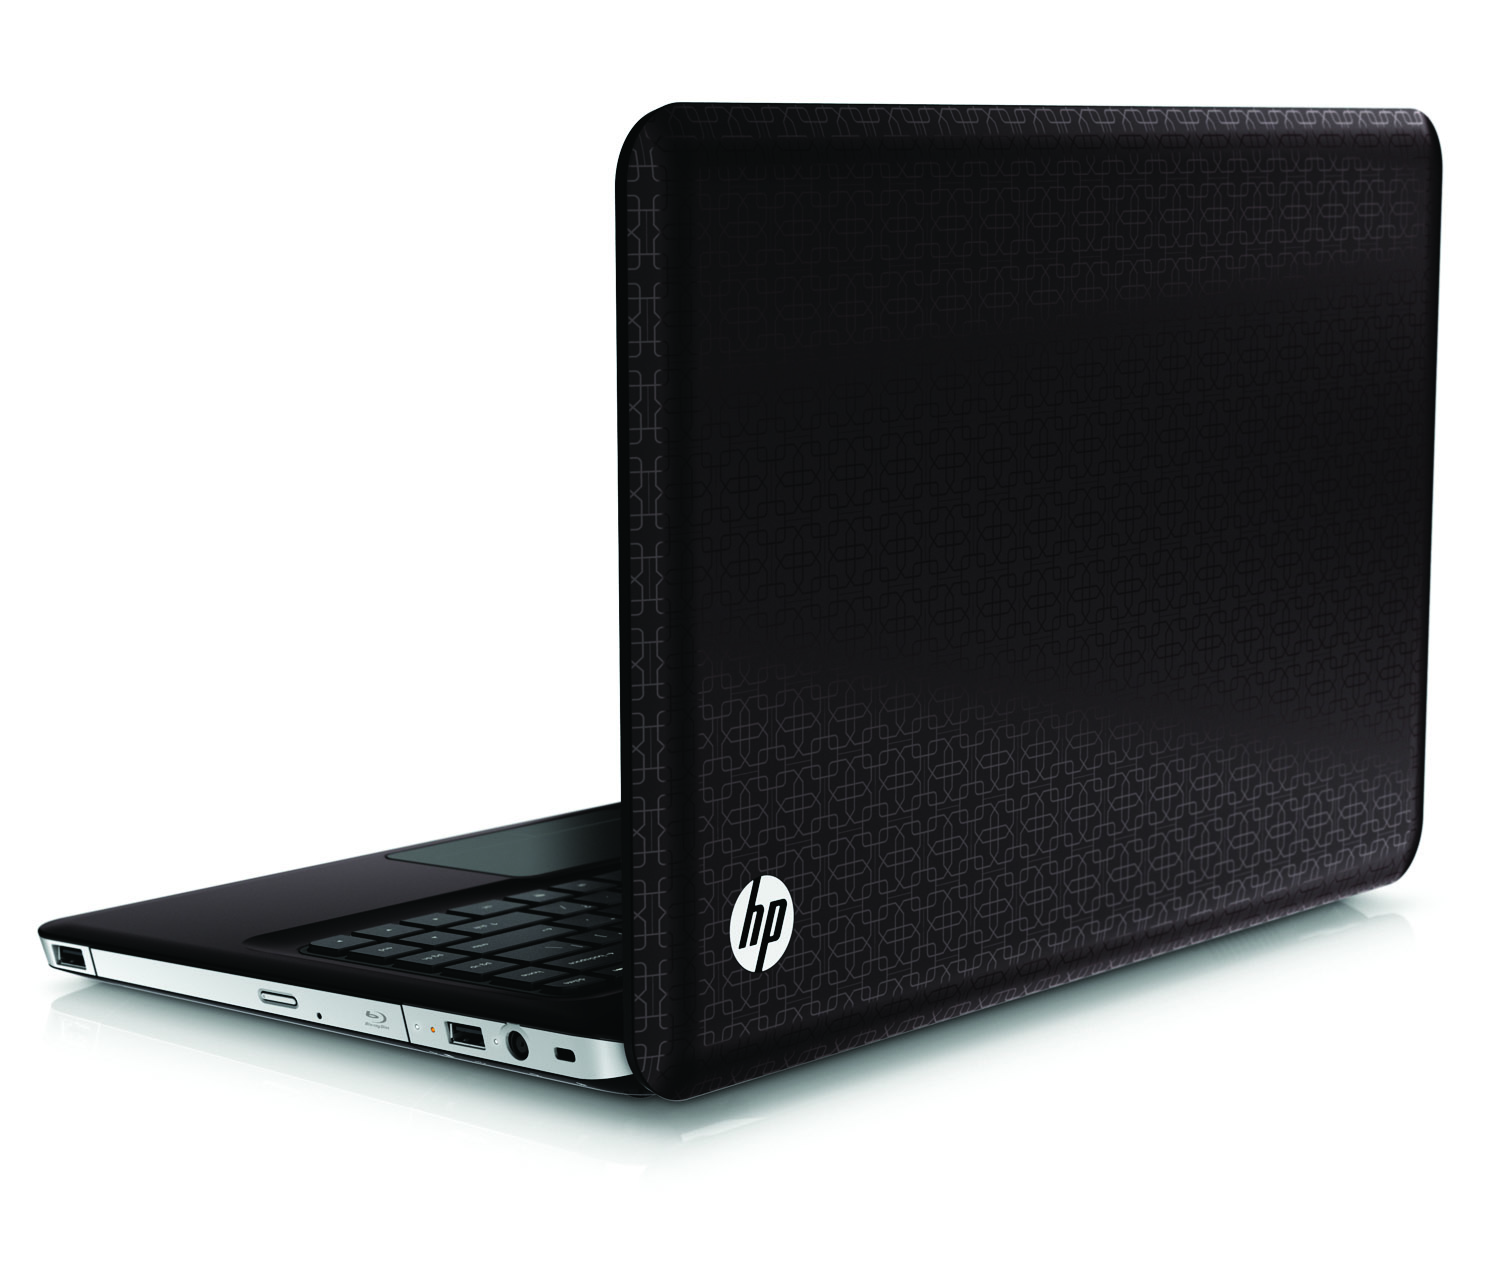 HP Pavilion dv6 Entertainment PC, black cherry, rear left open